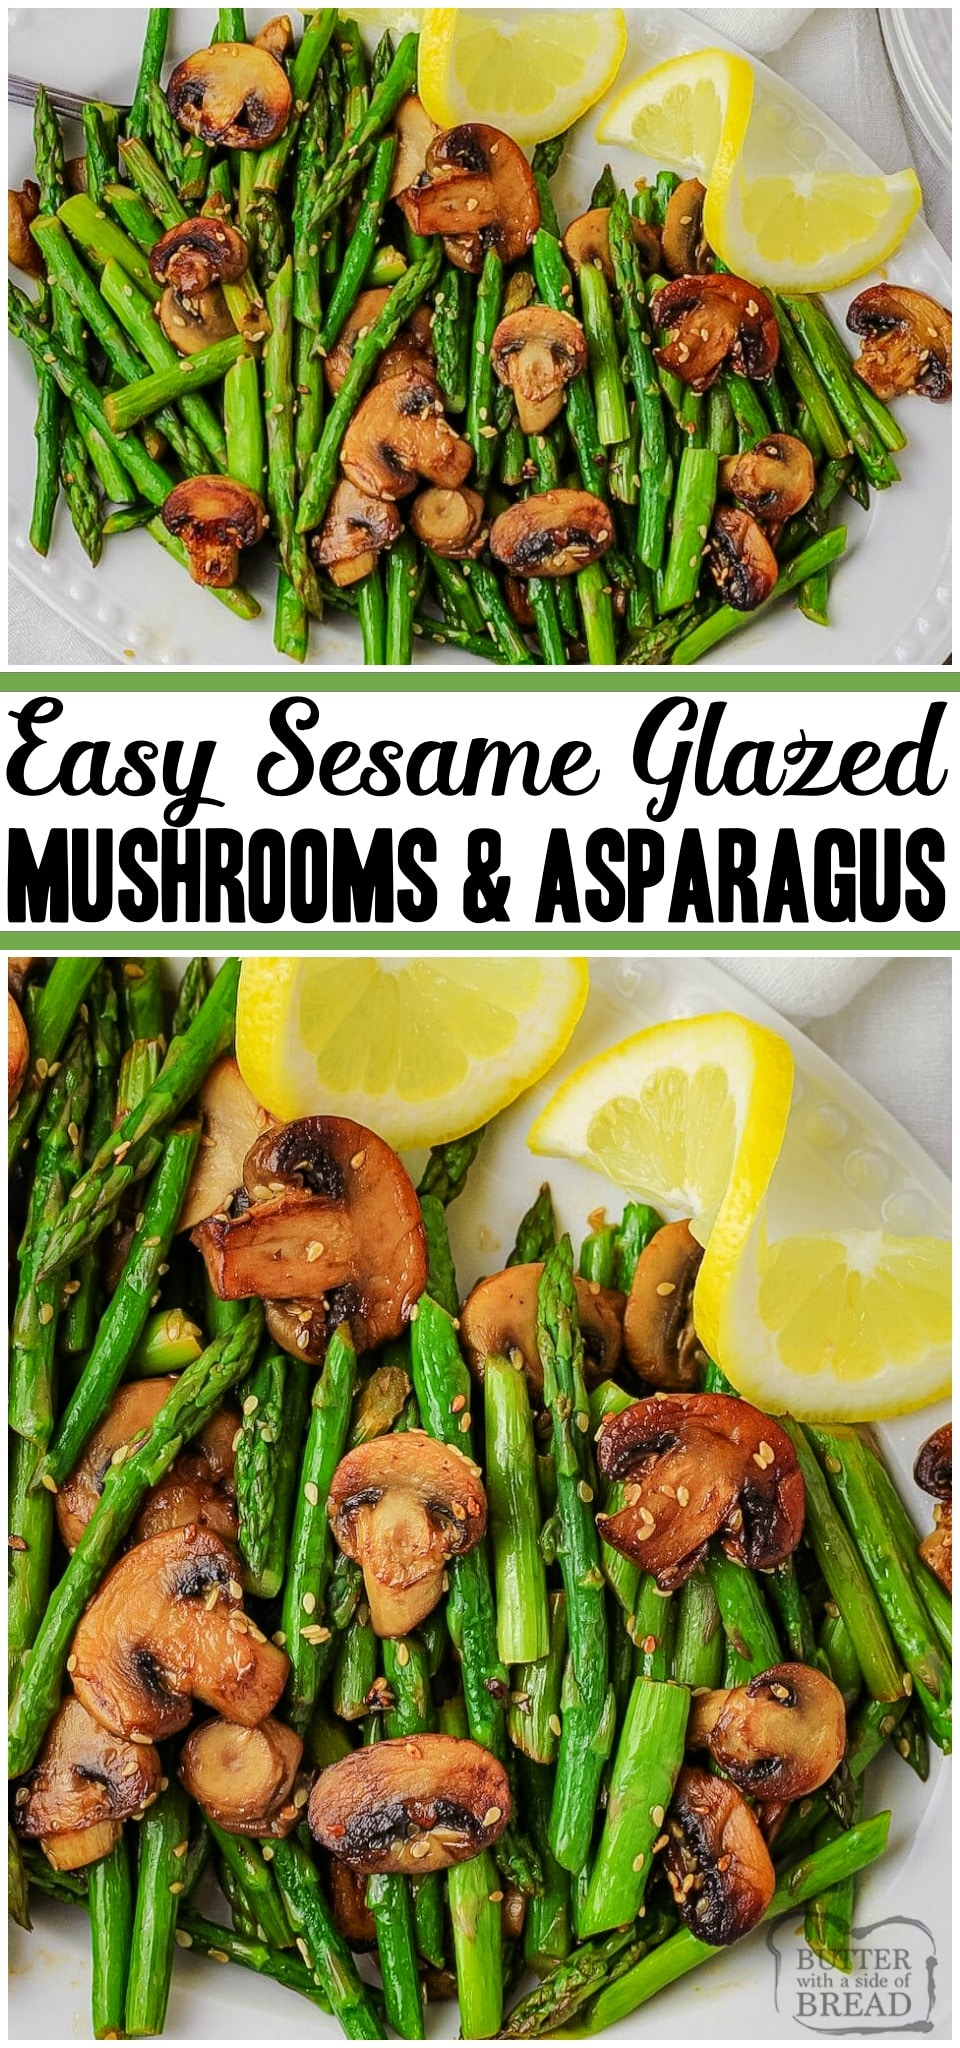 Sesame Mushrooms & Asparagus is a delicious vegetable side dish with a hint of lemon and sesame oil that adds awesome flavor. This simple asparagus recipe only has 7 ingredients and can be sautéed or grilled. #vegetables #mushrooms #asparagus #sesame #lemon #healthy #recipe from BUTTER WITH A SIDE OF BREAD